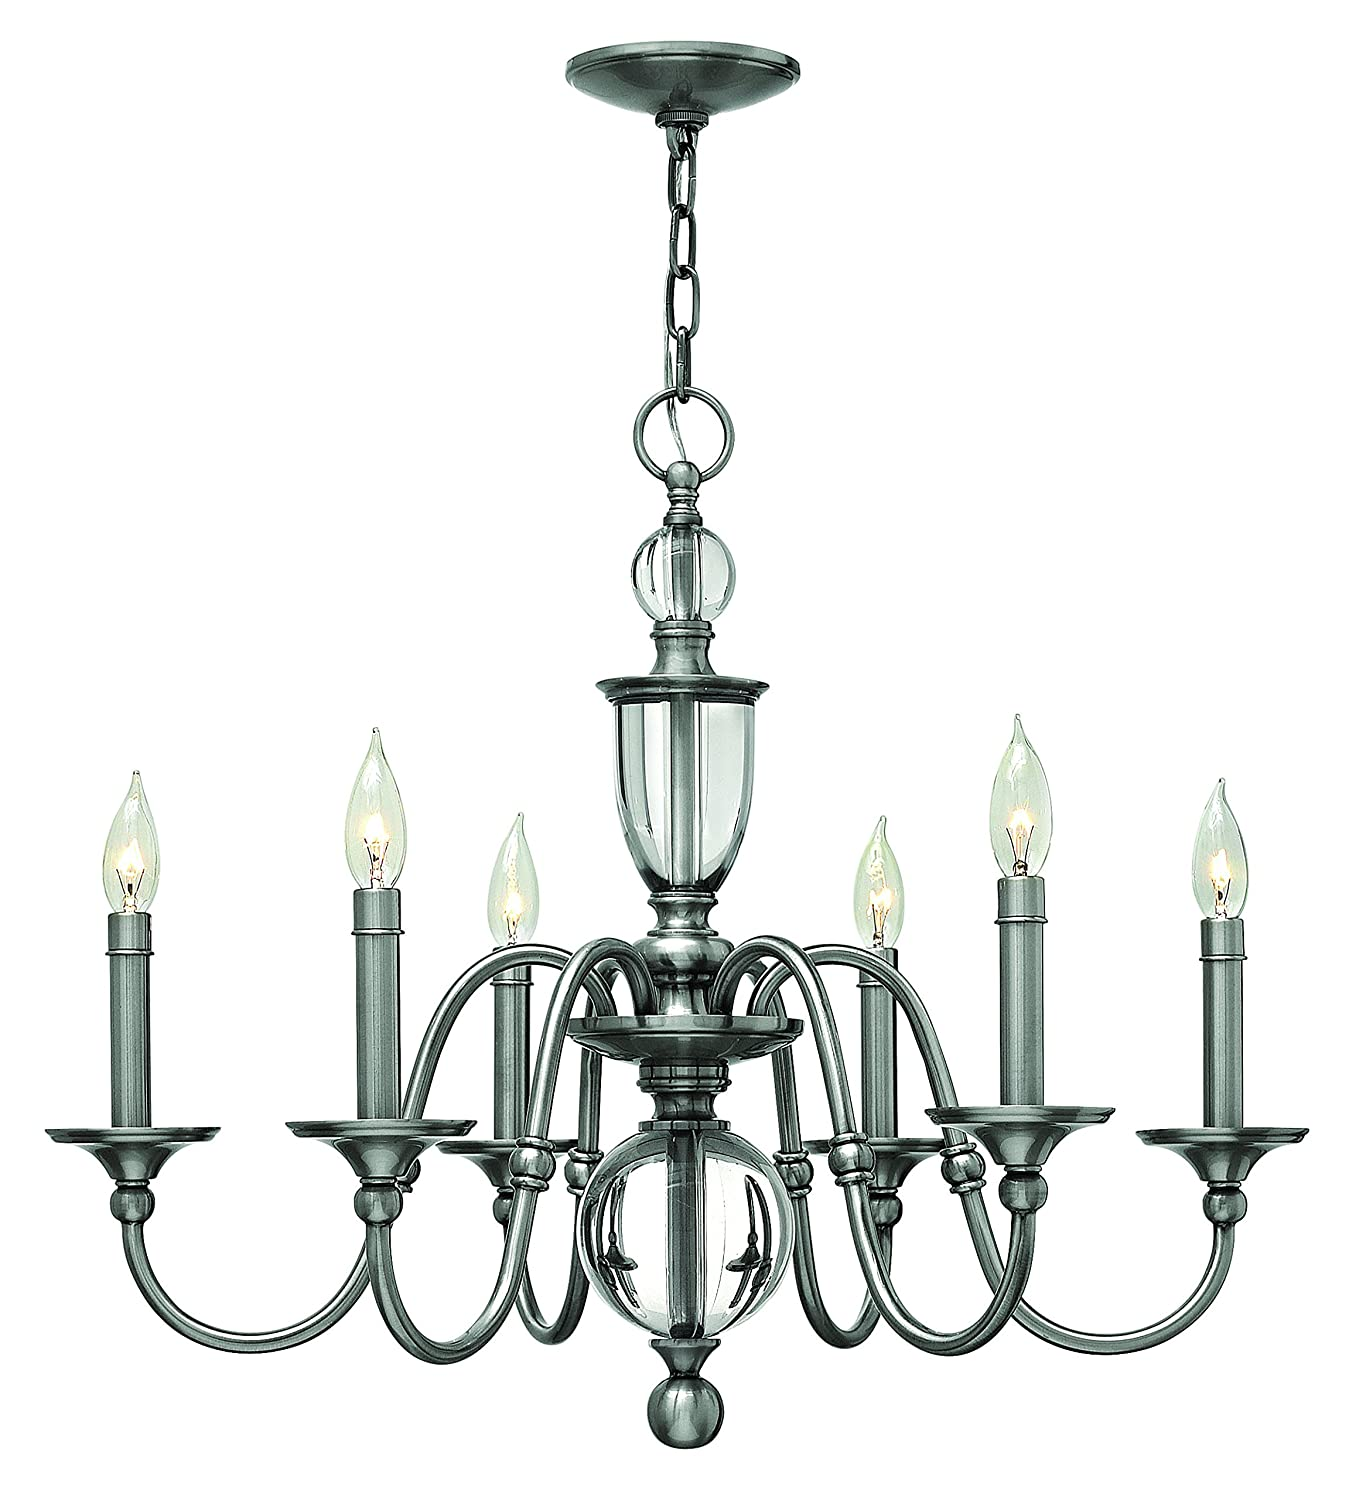 Hinkley 4956pl traditional six light chandelier from eleanor hinkley 4956pl traditional six light chandelier from eleanor collection in chrome pol ncklnish amazon arubaitofo Choice Image